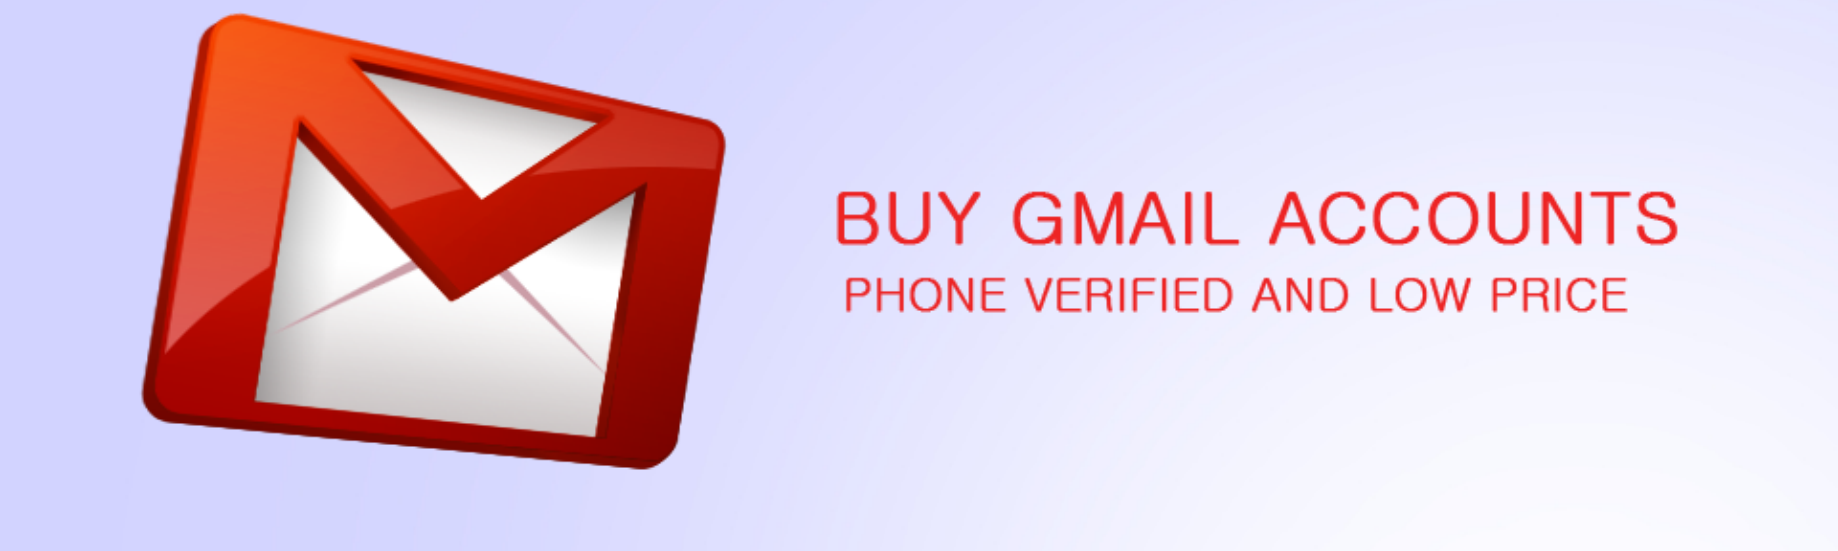 Buy Gmail Accounts service